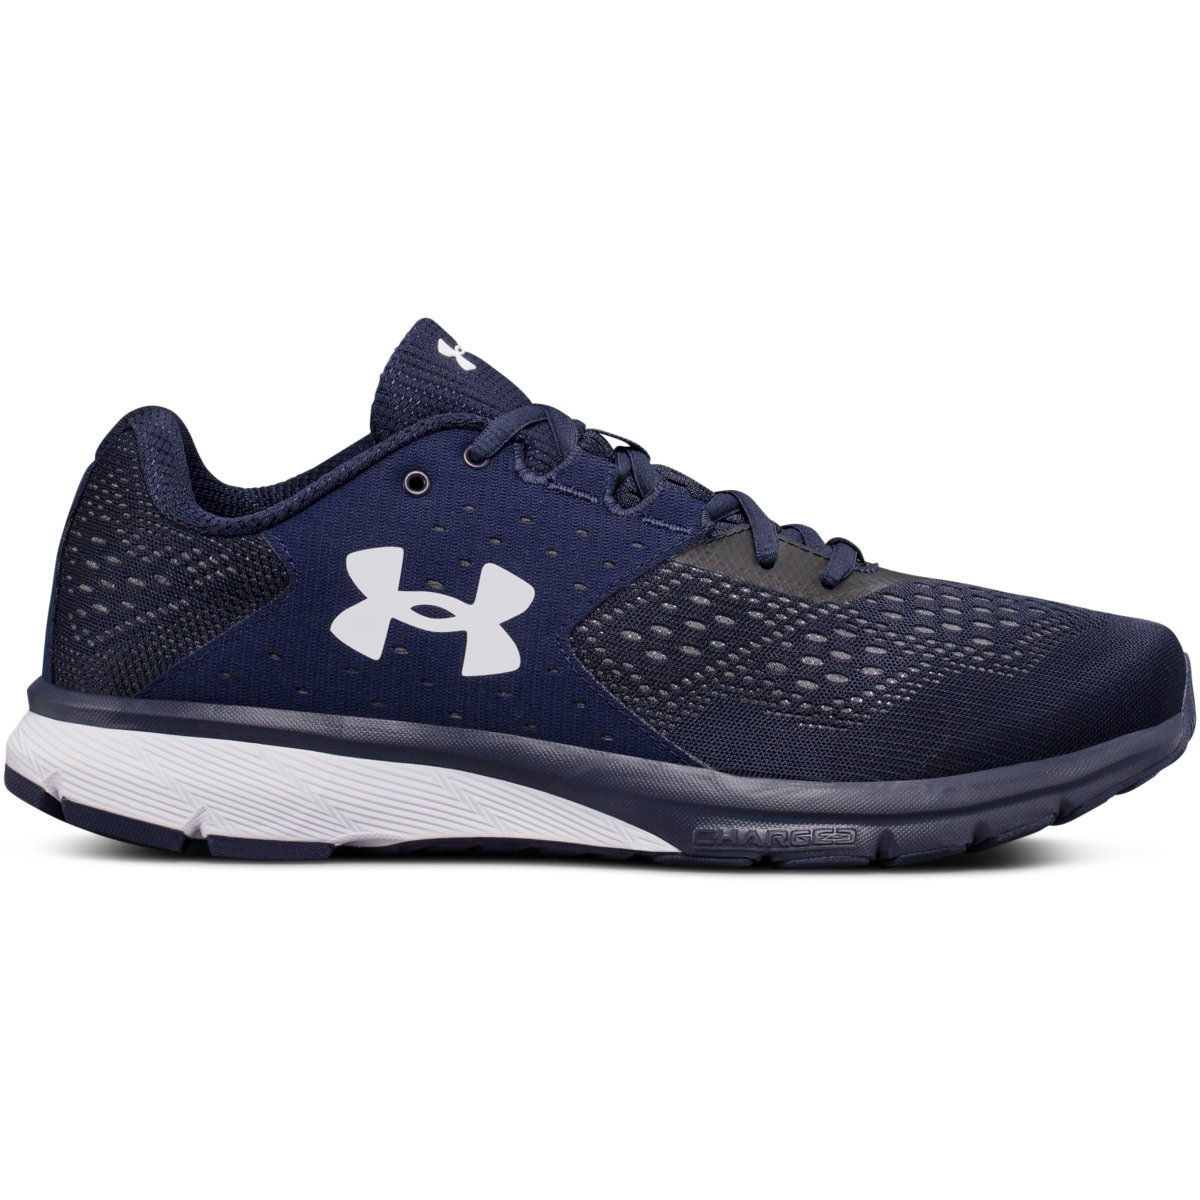 Chaussures de running Under Armour Charged Rebel - UK 13